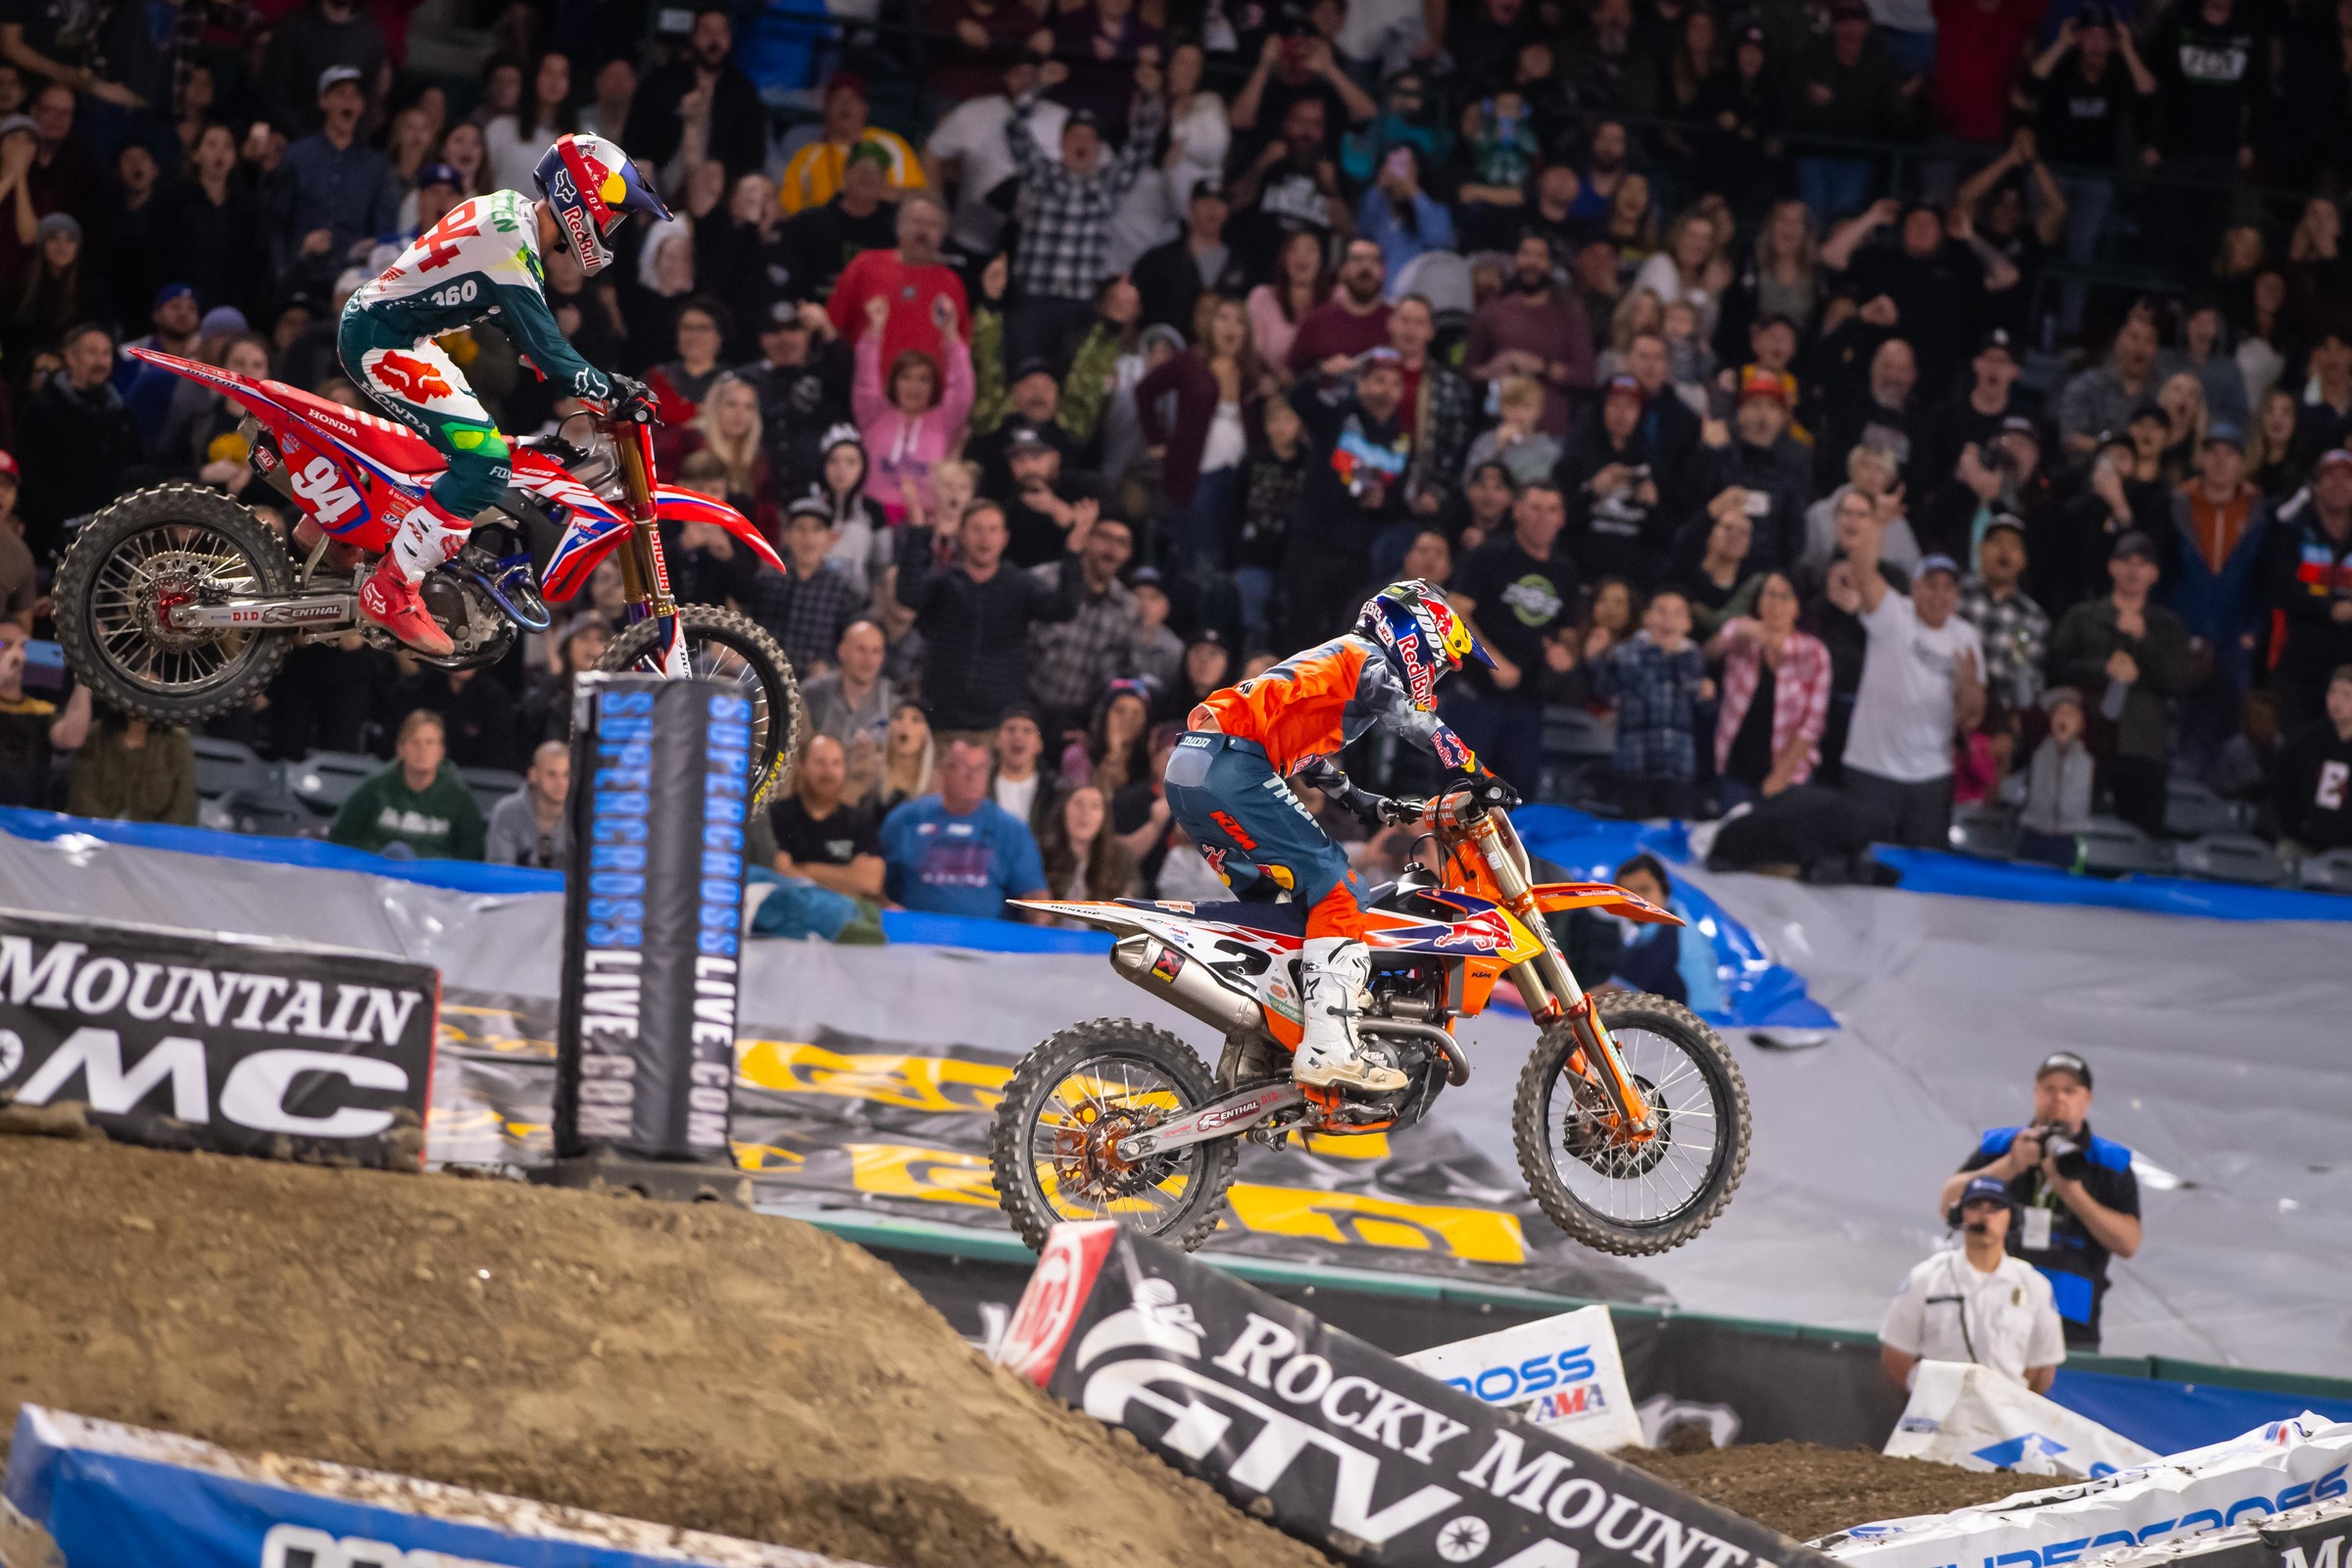 Webb passed Ken Roczen on the last lap in the first main event after Roczen made a mistake with only two turns to go before the checkered flag.